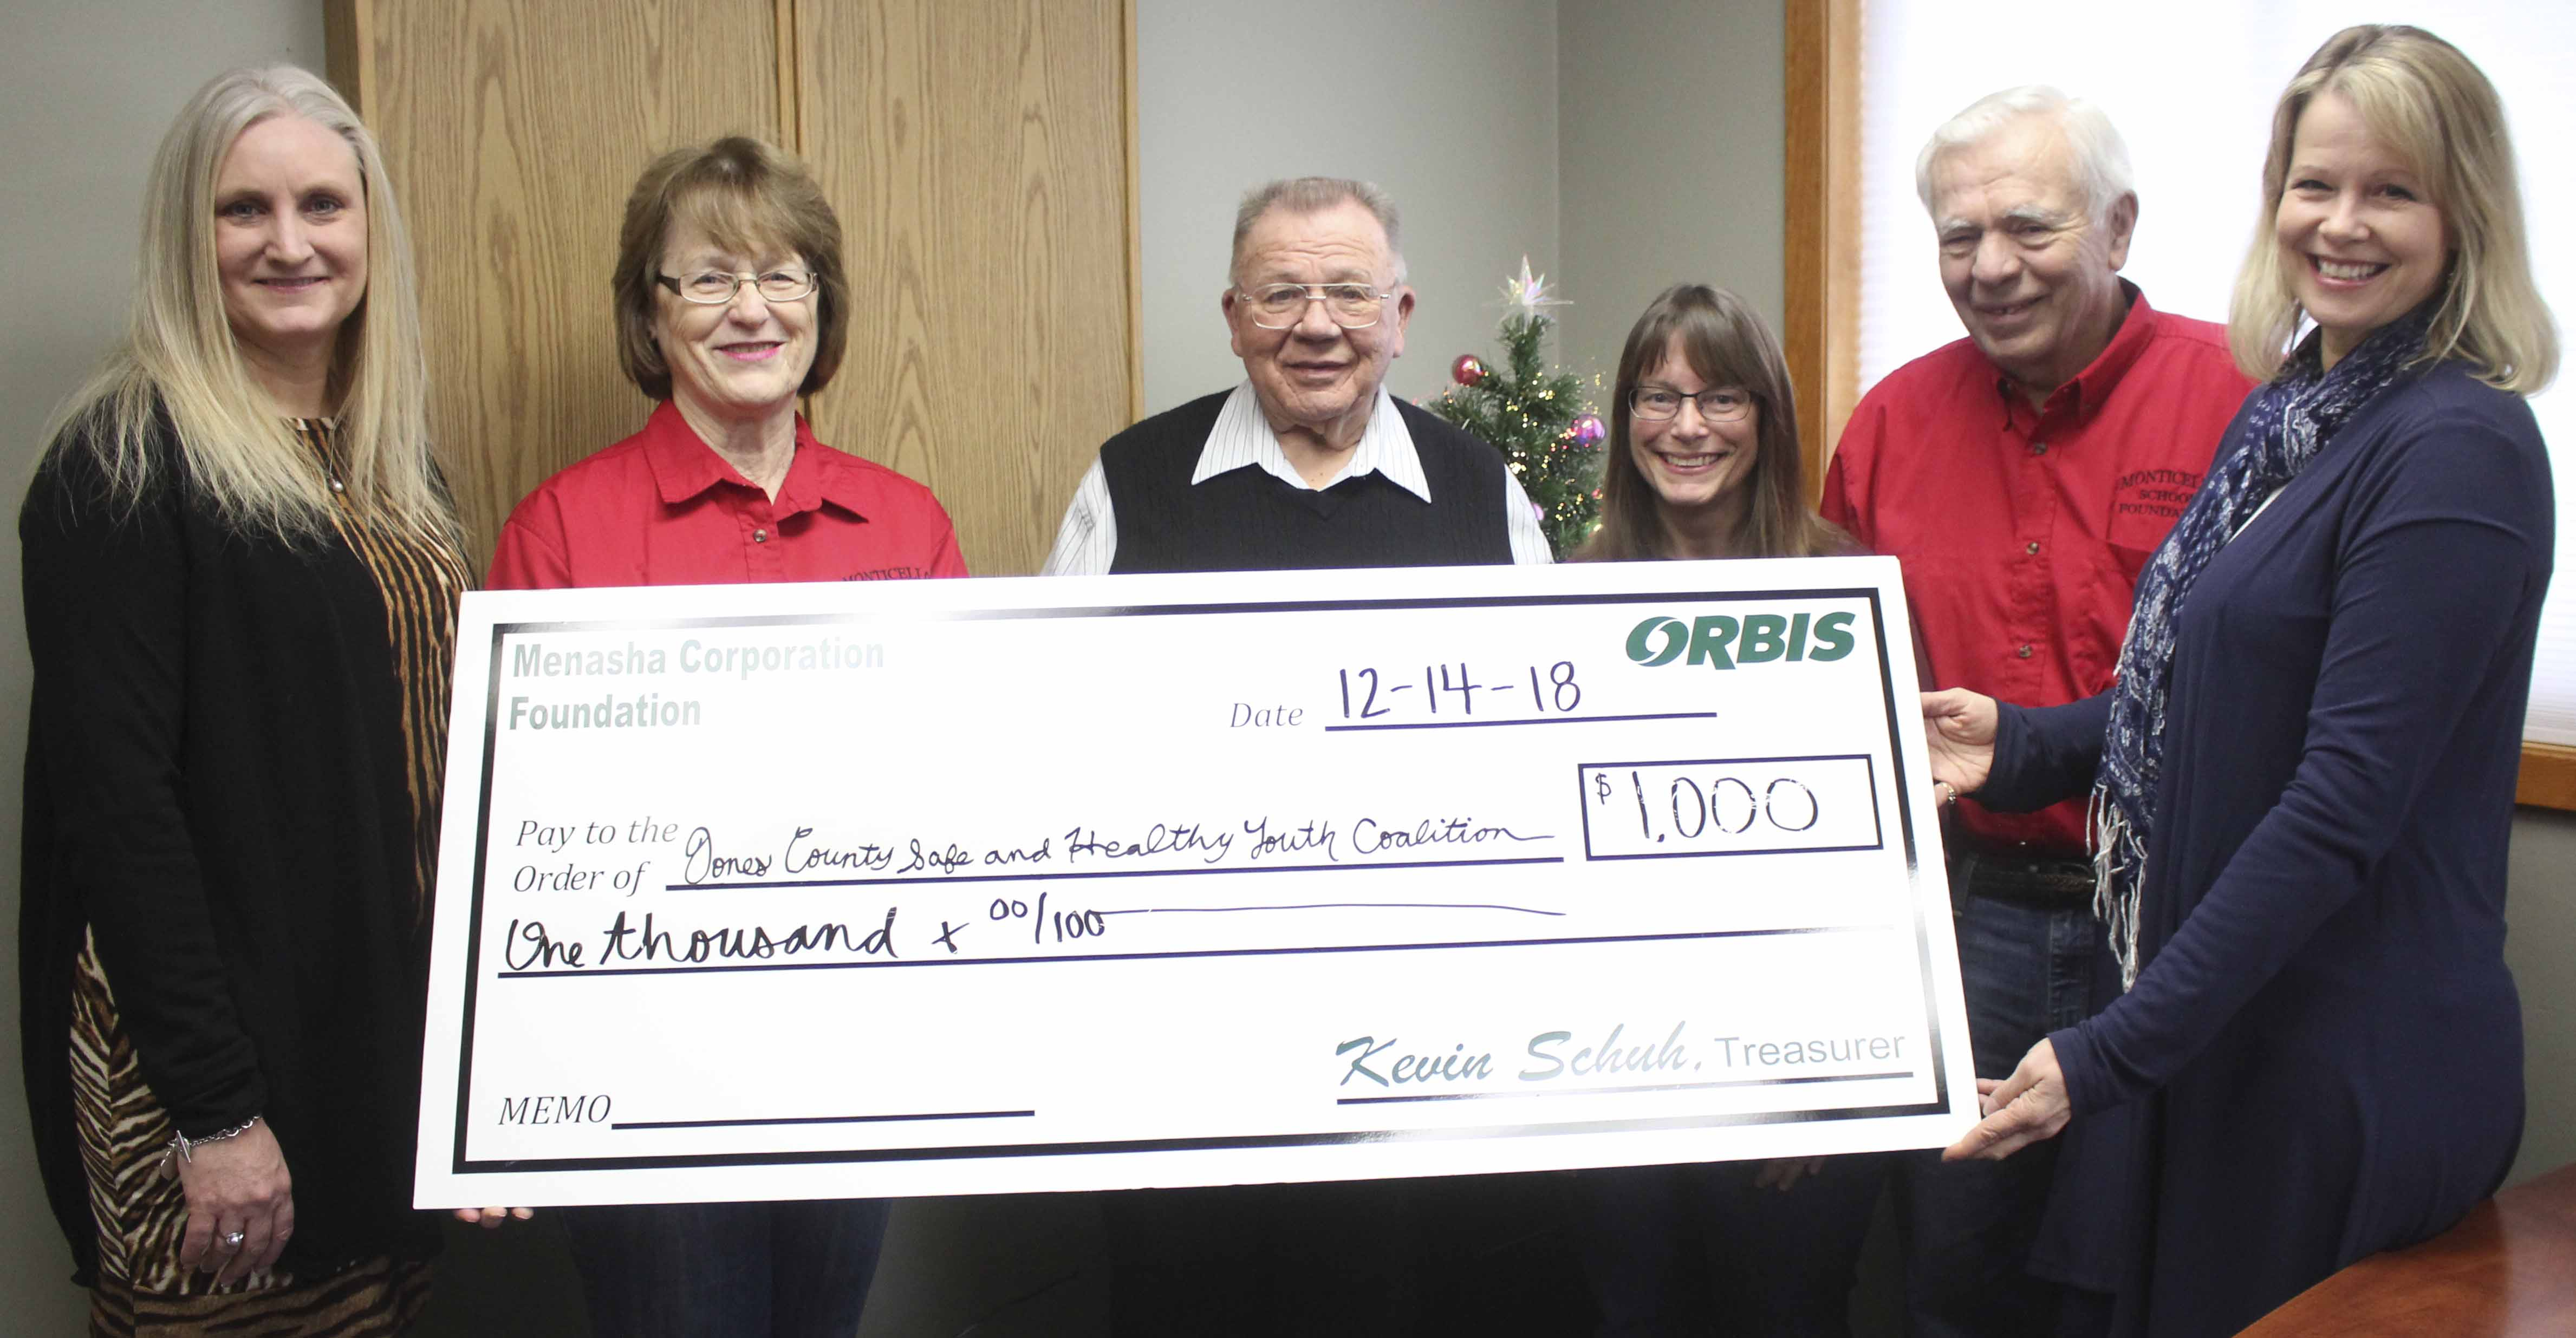 The Jones County Safe and Healthy Youth Coalition received a $1,000 donation from Orbis. From left are Lynnette Martineau of Orbis, and representing the coalition: Audrey Savage, Lloyd Eaken, Brenda Hanken, Steve Williams and Jennifer Husmann.